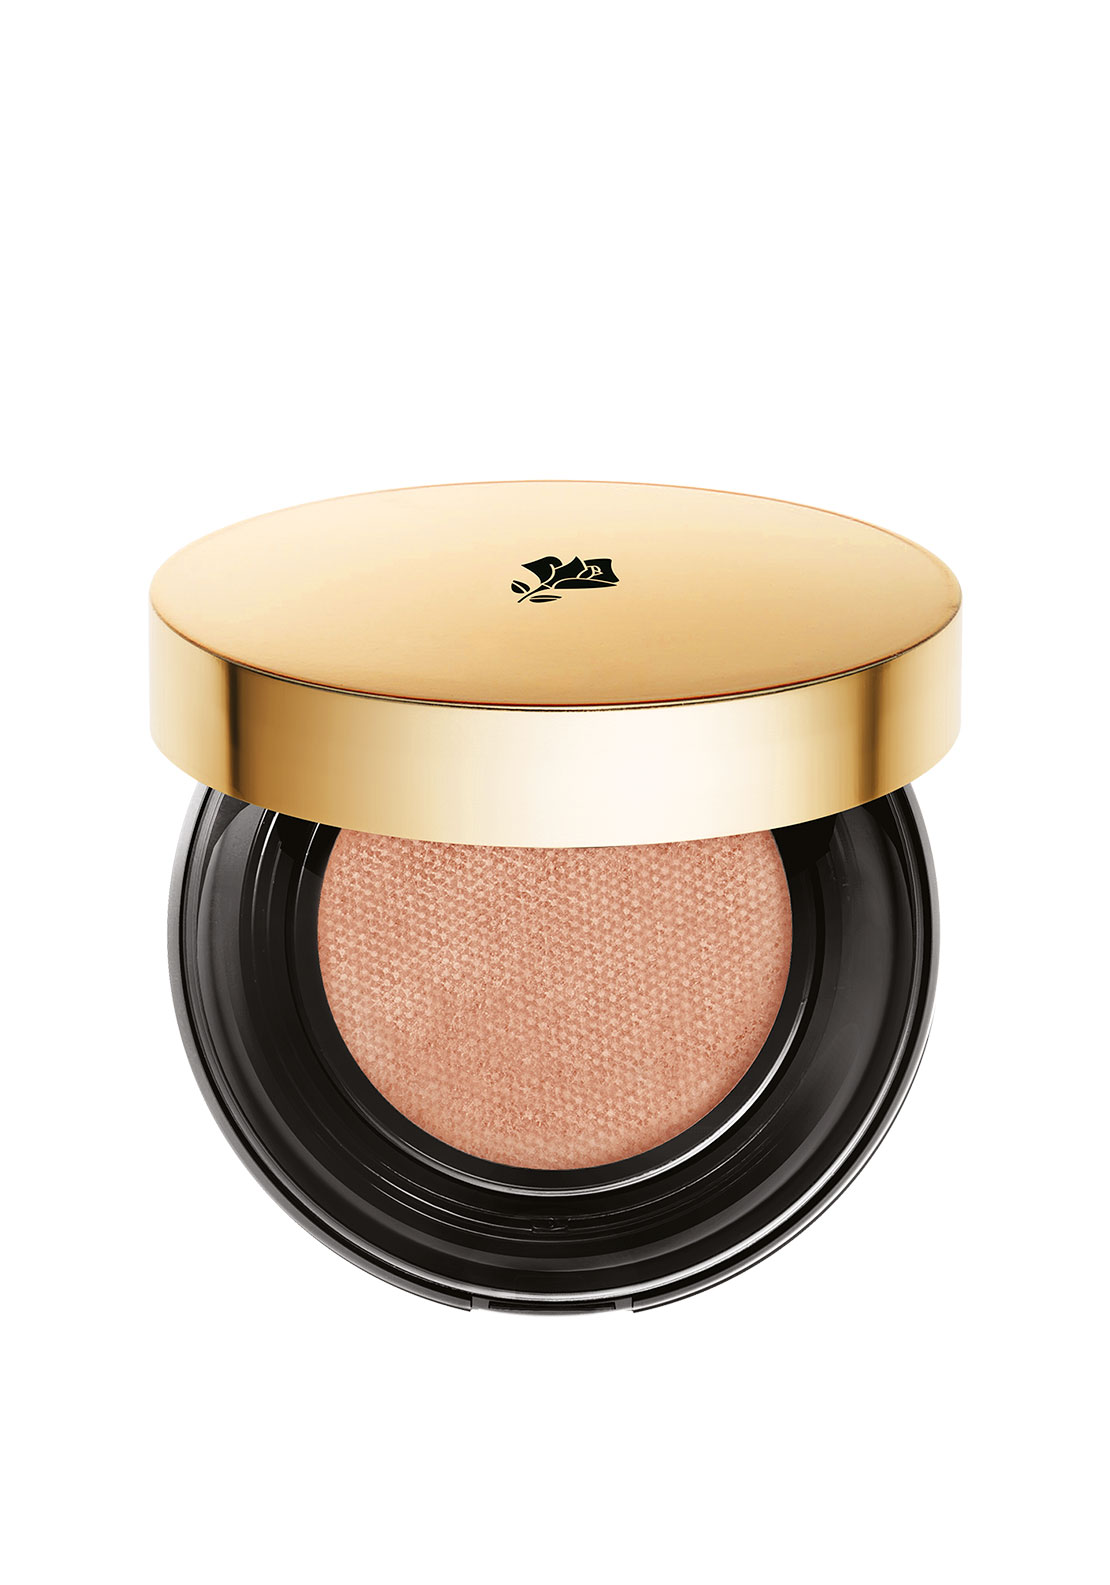 Lancome Teinte Idole Ultra Cushion Compact Foundation Refill, Ivoire